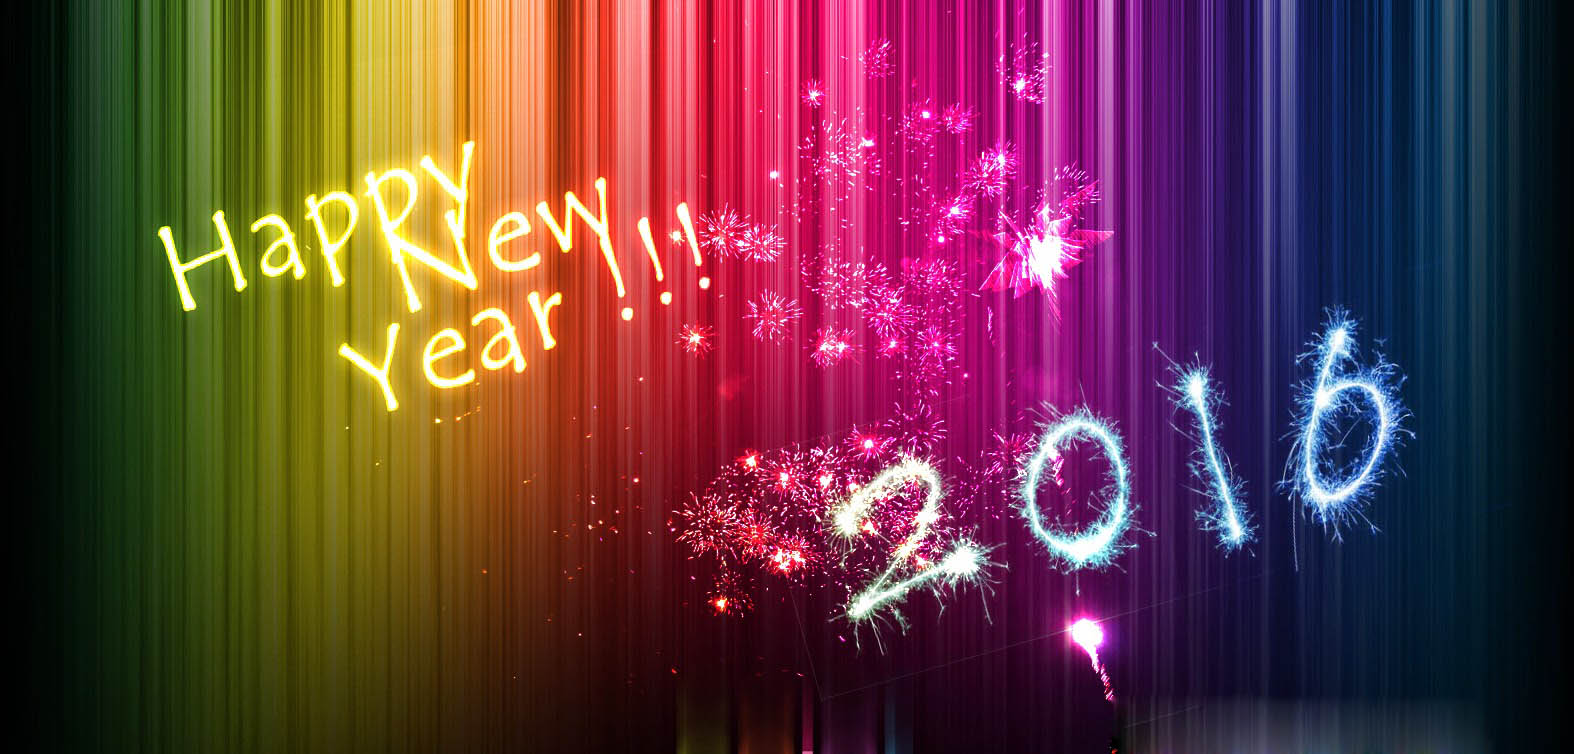 Happy New Year HD Wallpaper New Year Images Happy New Year 2016 1574x754